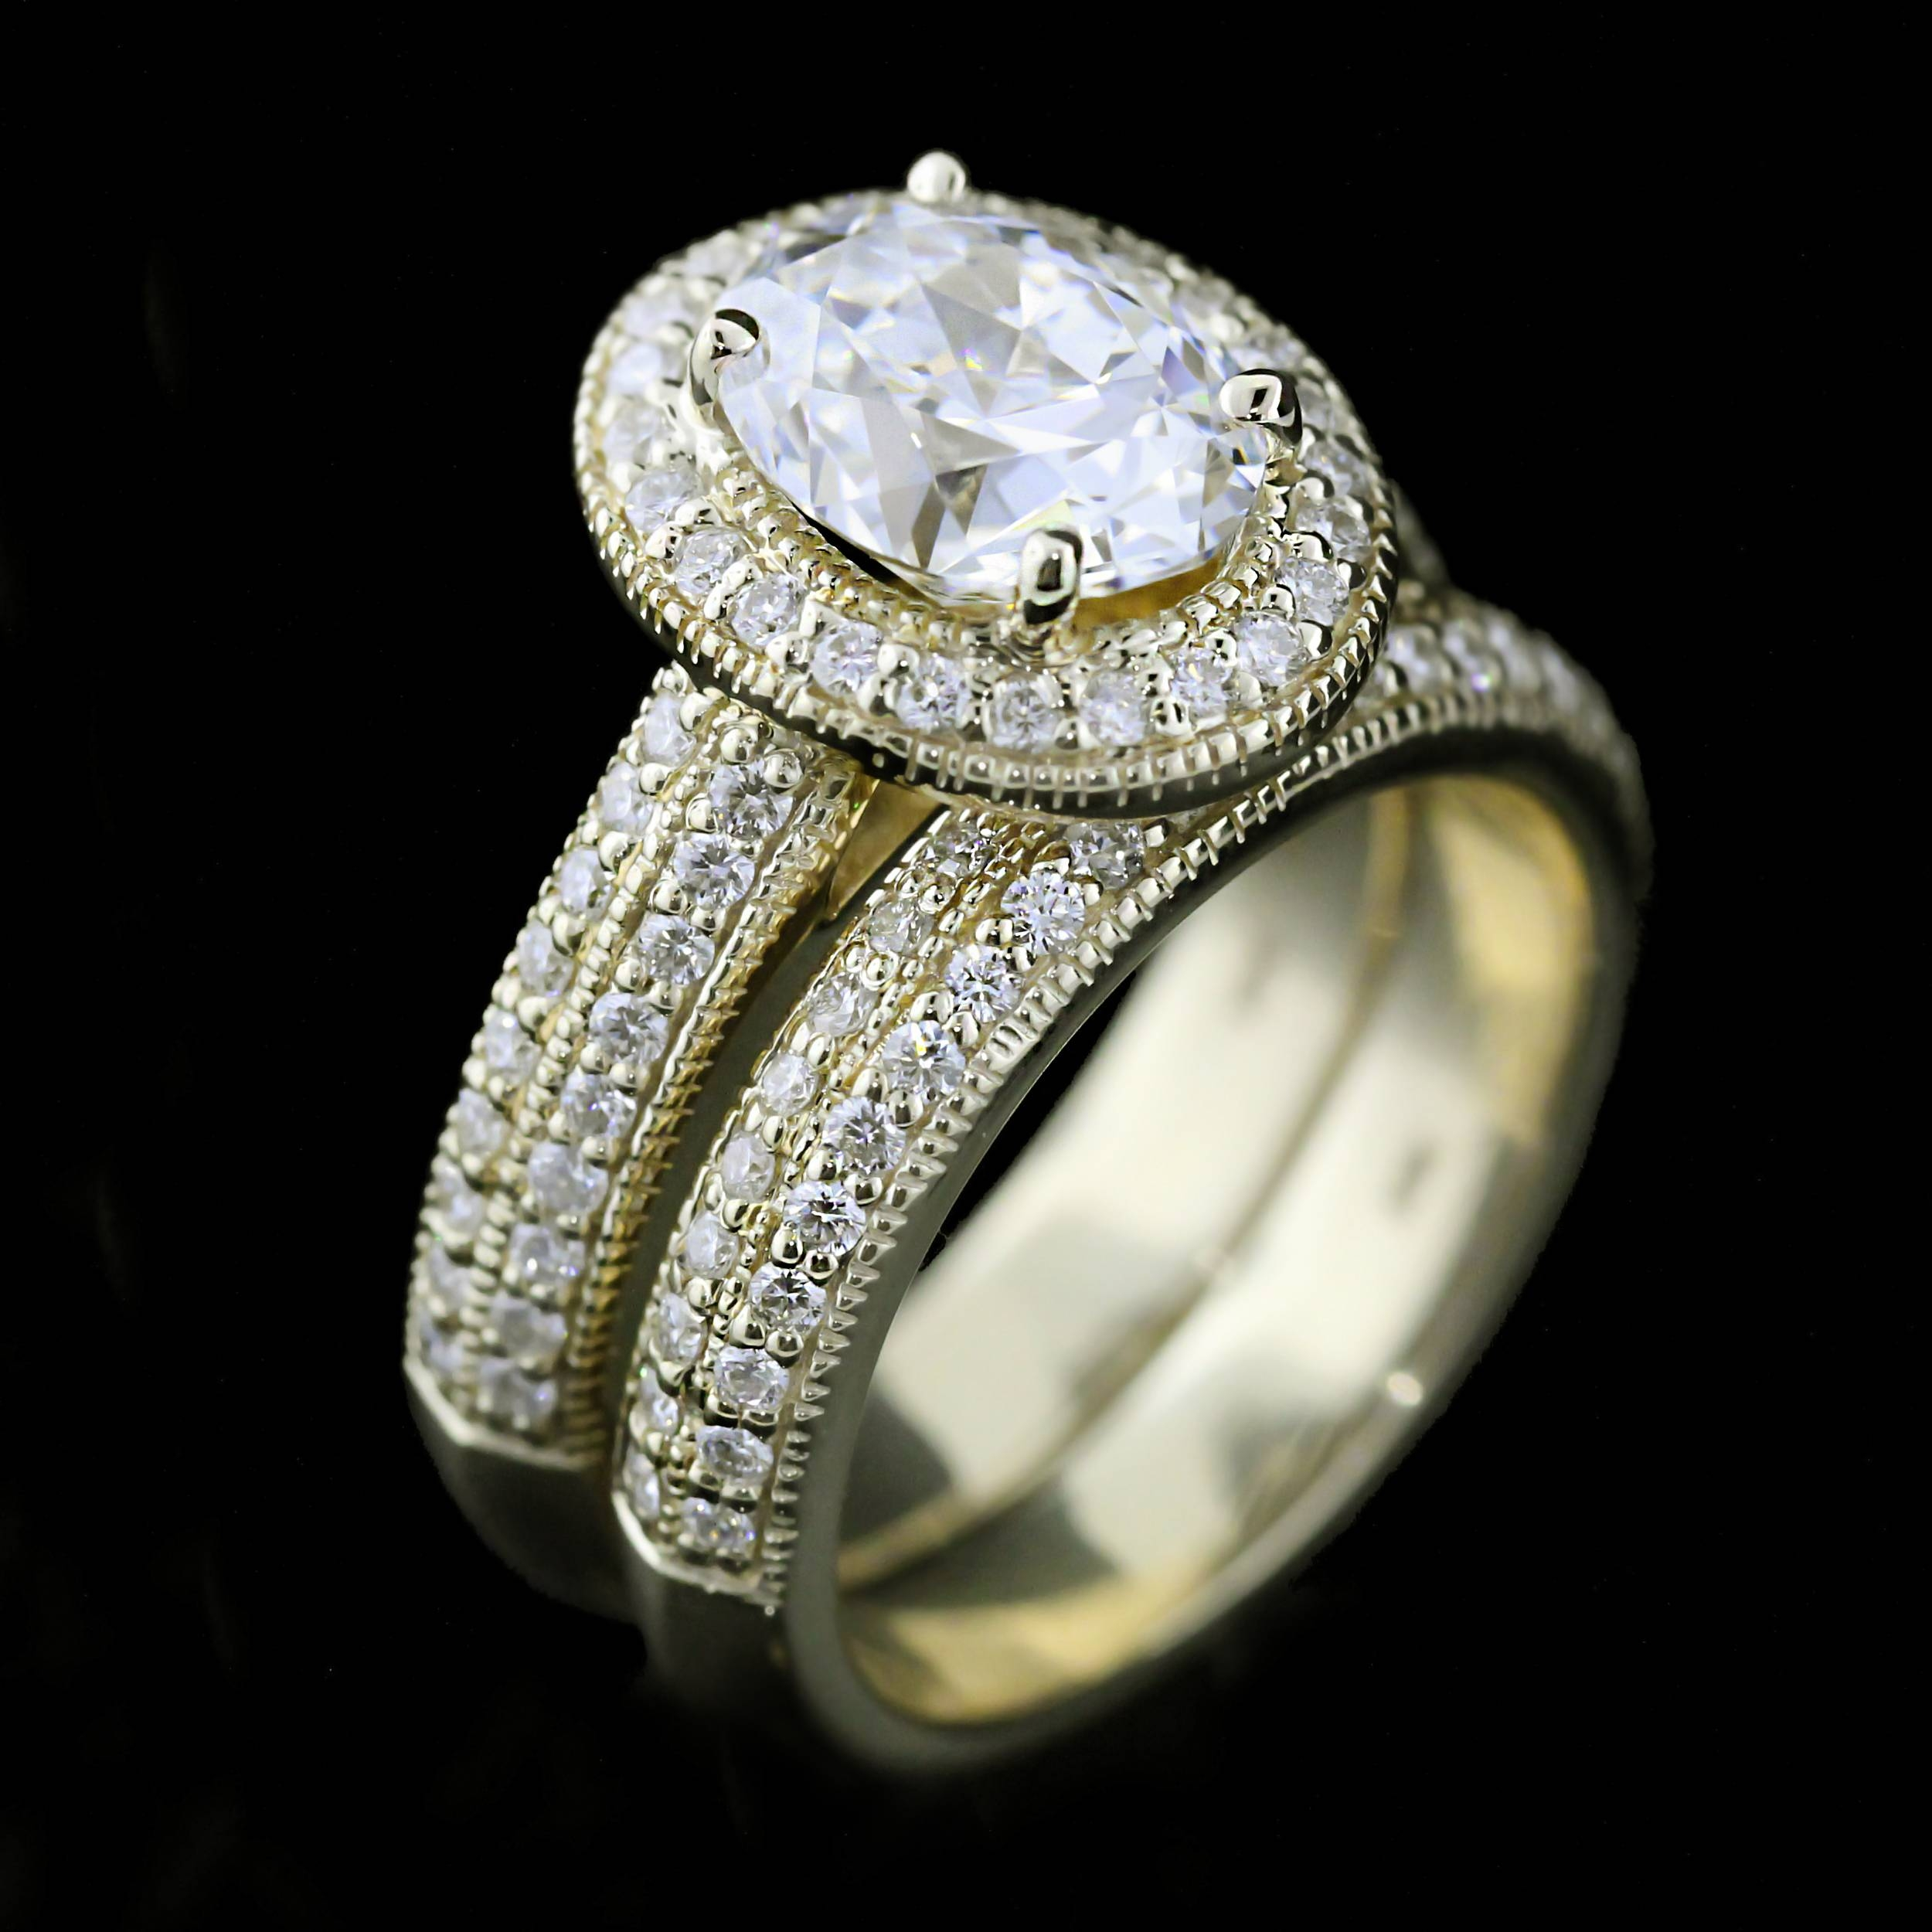 lab englewood bressay cliffs created rings made page views diamond engagement diamonds nj man maevona